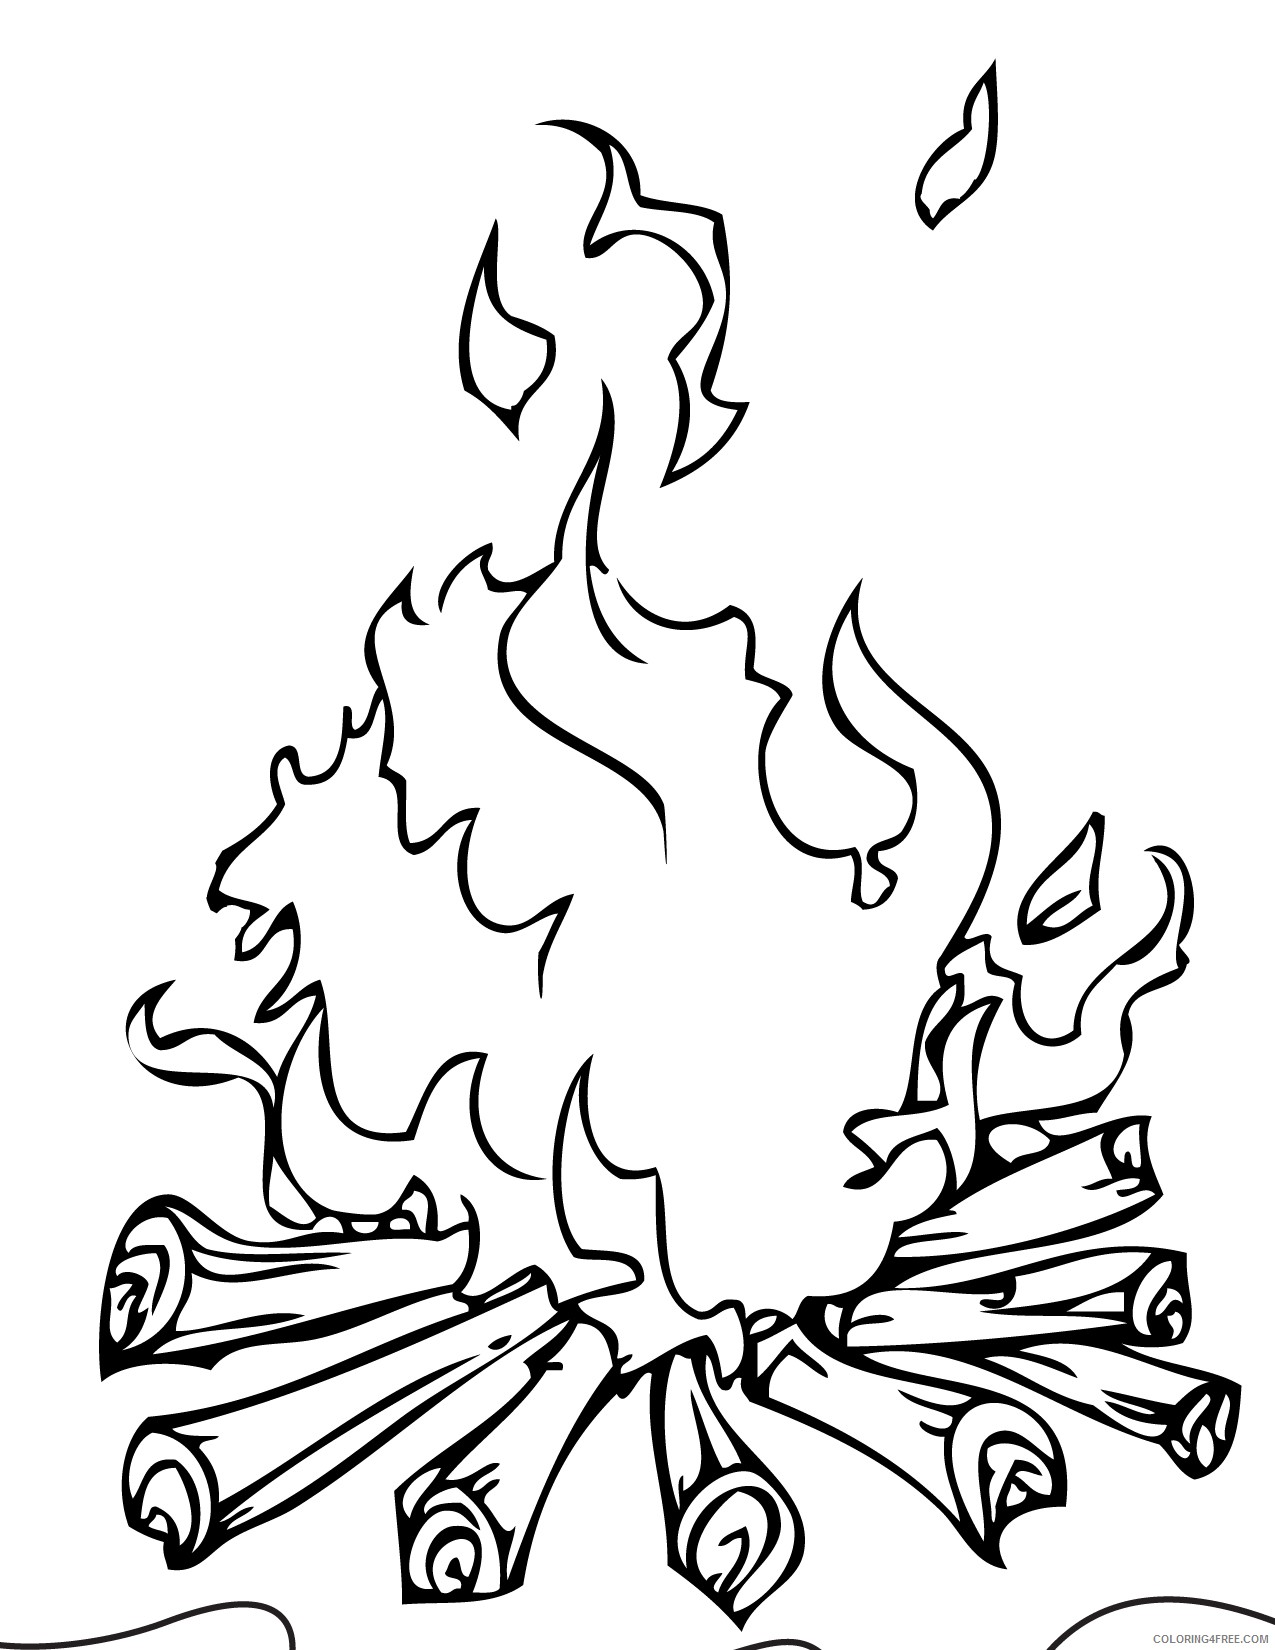 camping coloring pages campfire Coloring4free